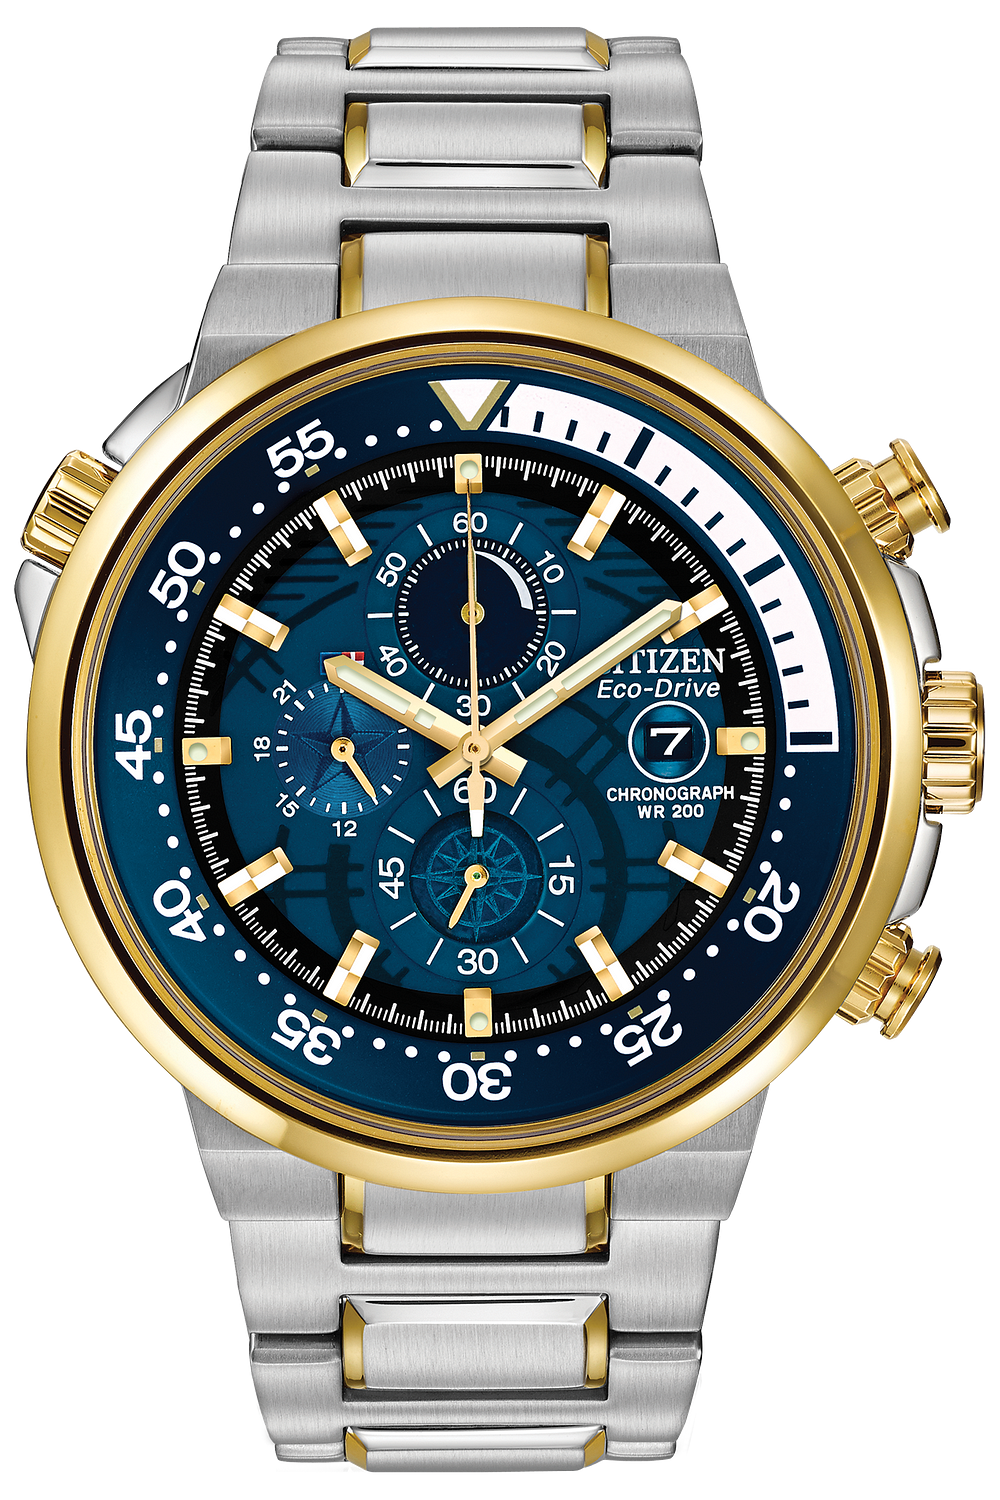 endeavor men s eco drive chronograph blue dial watch citizen rh citizenwatch com citizen eco drive wr200 skyhawk manual pdf citizen watch eco drive wr 200 manual